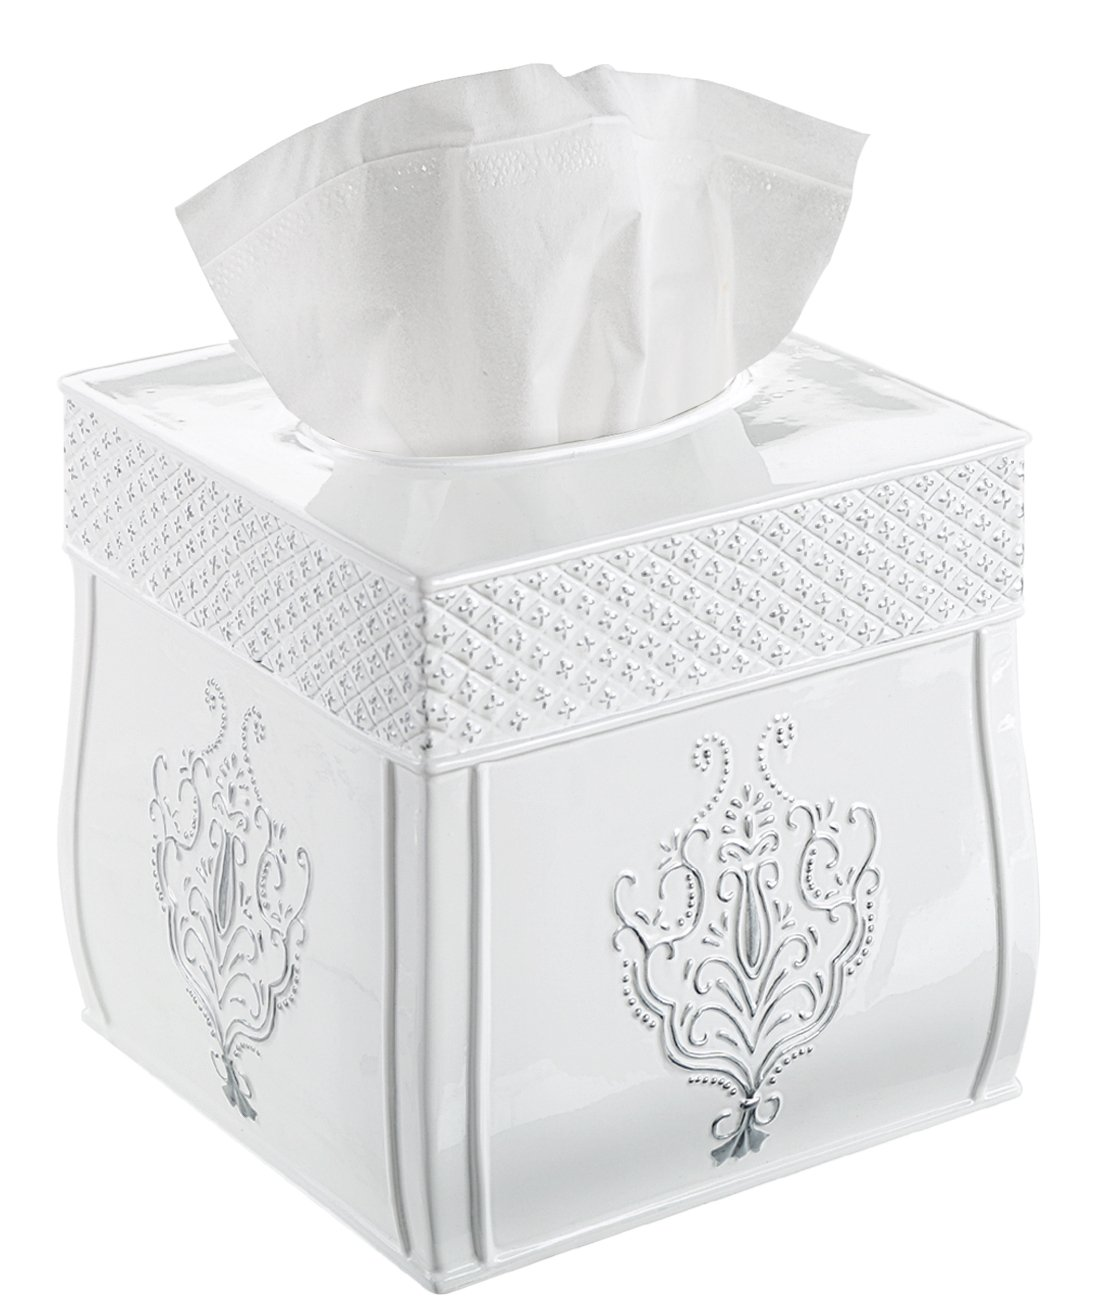 Creative Scents Square Tissue Box Cover - Decorative Tissue Holder is Finished in Beautiful Vintage White, Bathroom Accessories